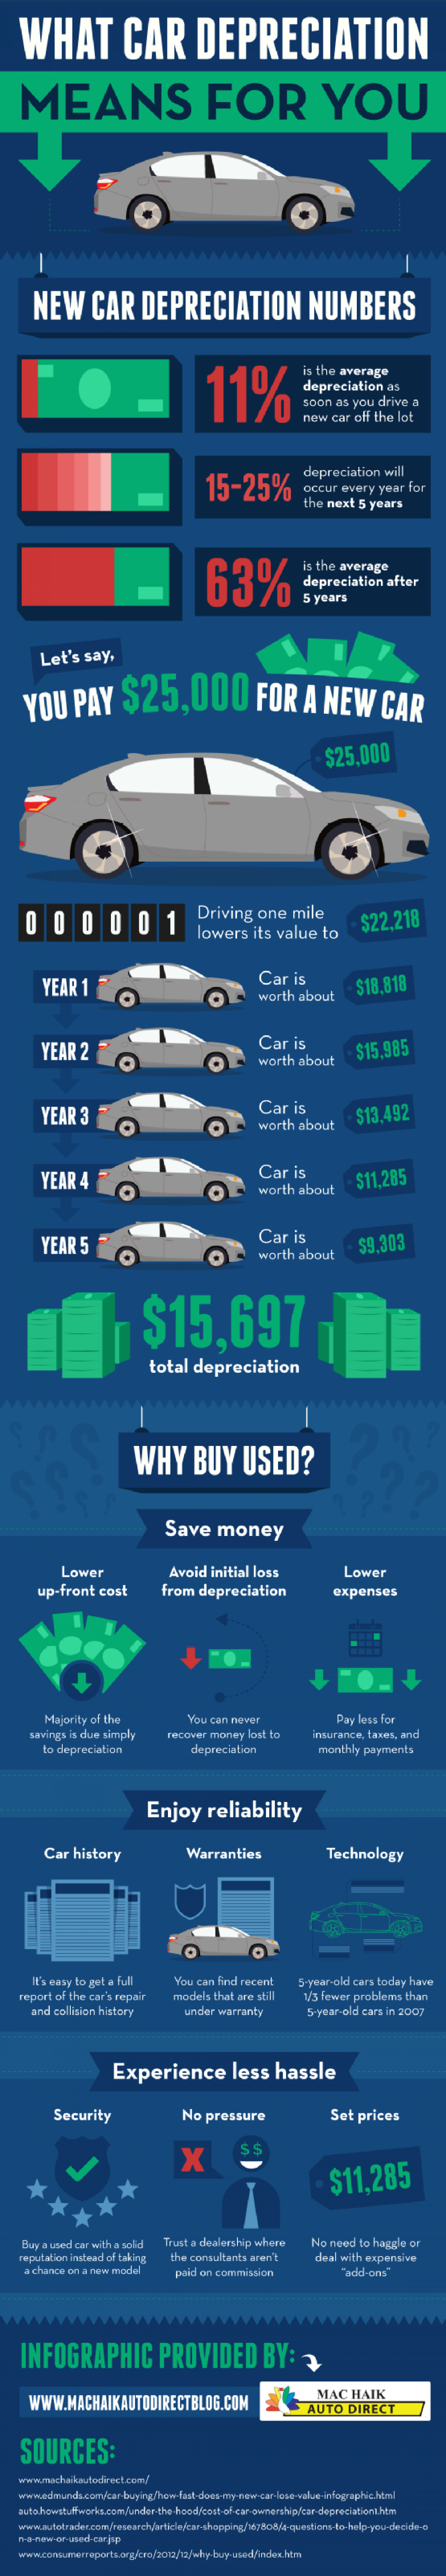 What Car Depreciation Means For You Infographic